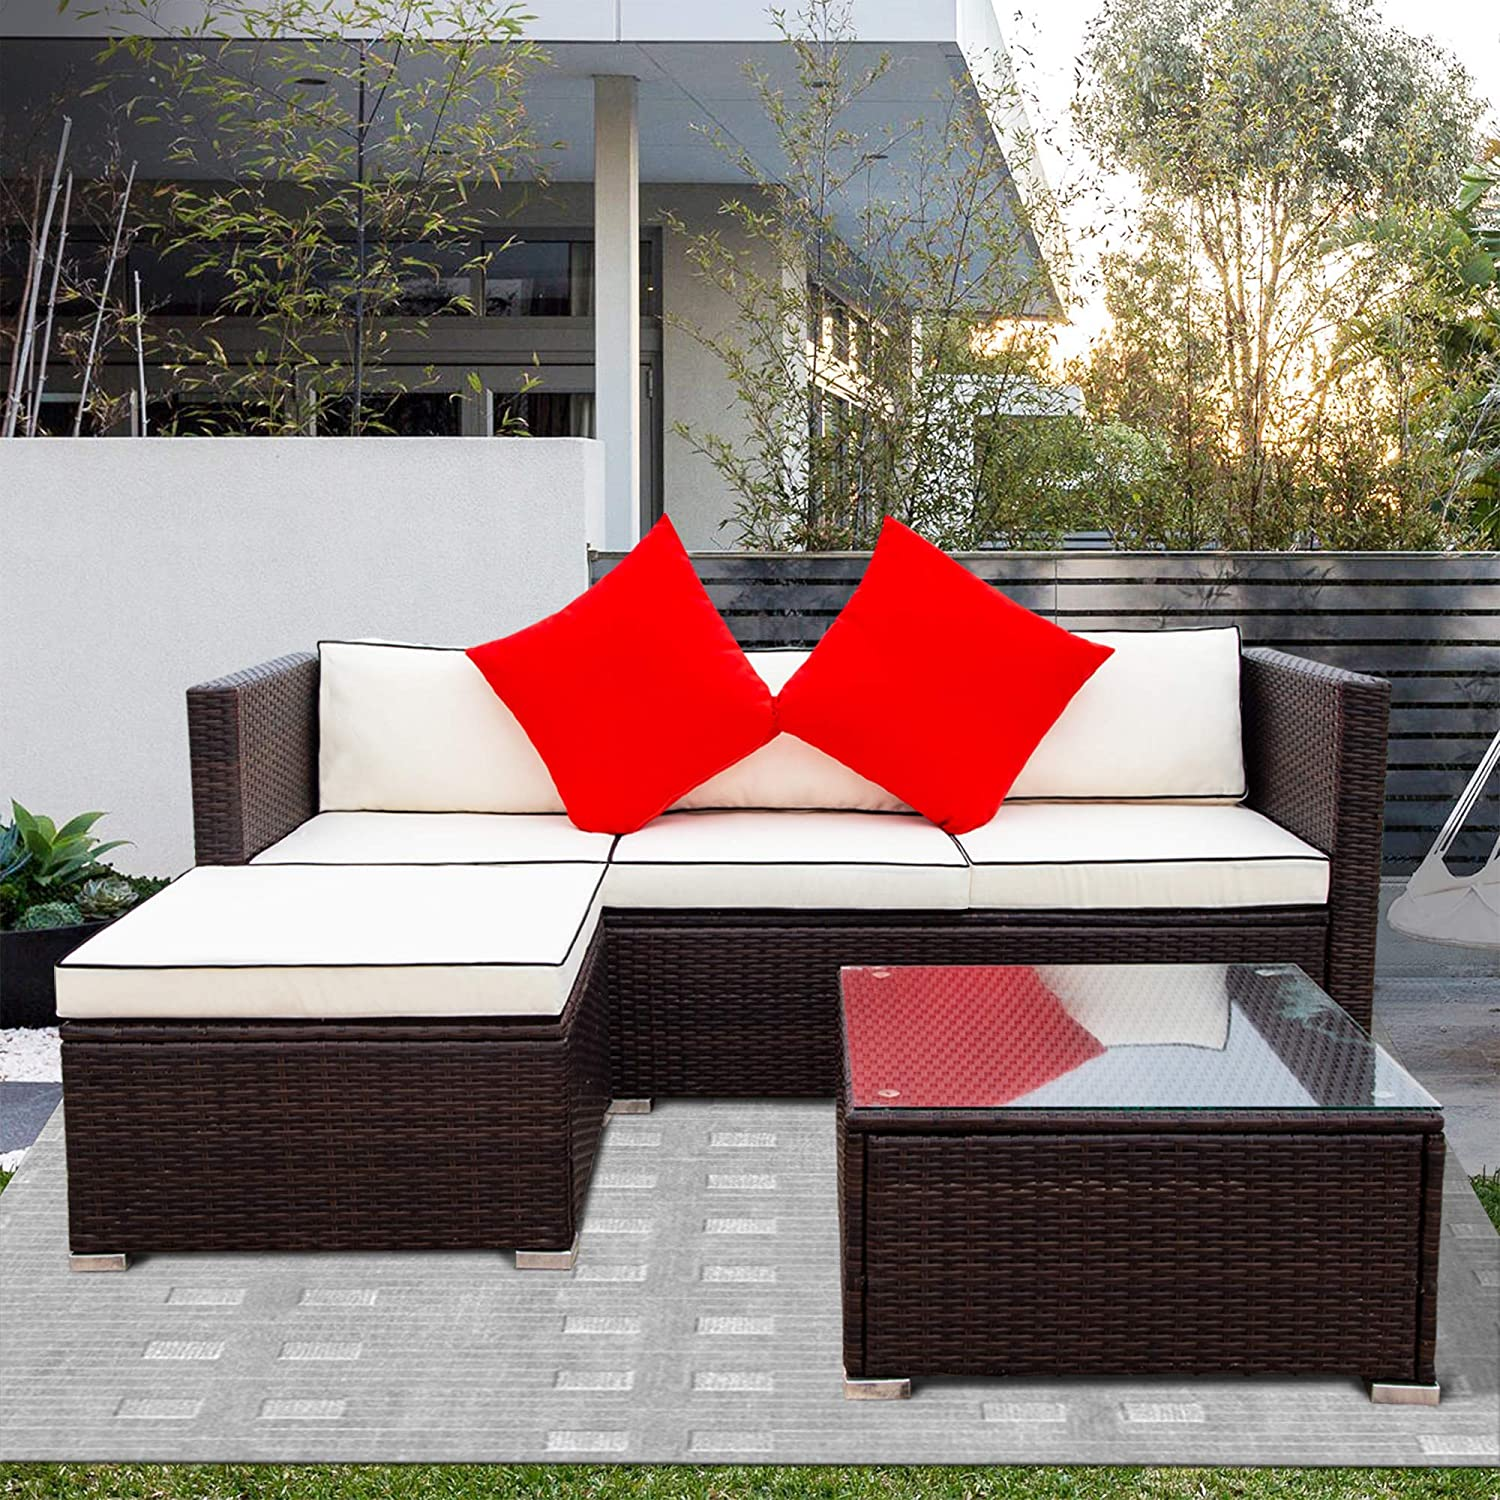 MGH Outdoor Patio Furniture Set, 3 Piece Patio Wicker Rattan Sectional Conversation Sofa Set with Storage Box and Glass Table for Garden, Porch, Backyard, Cream Cushions